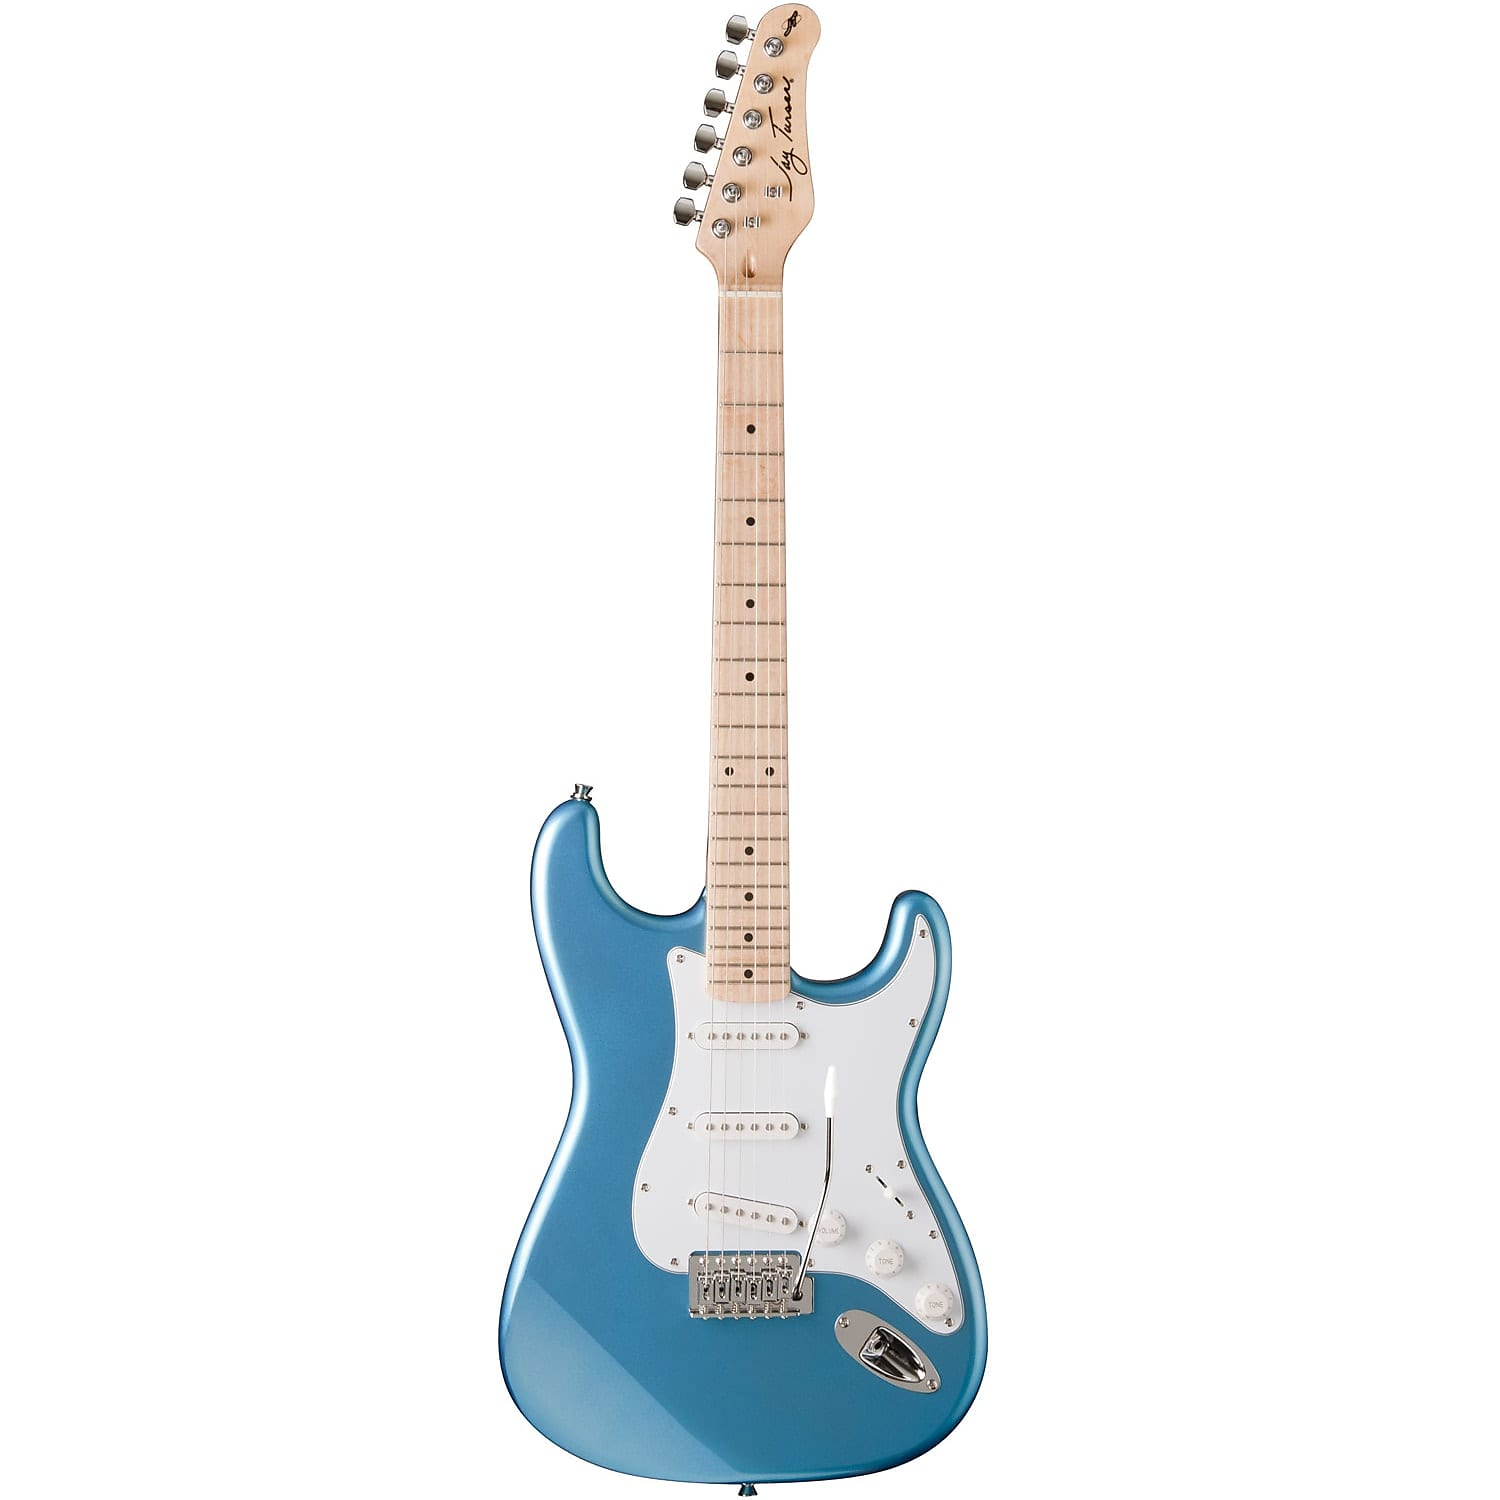 Jay Turser Double Cutaway Maple Electric Guitar Lake Placid Blue